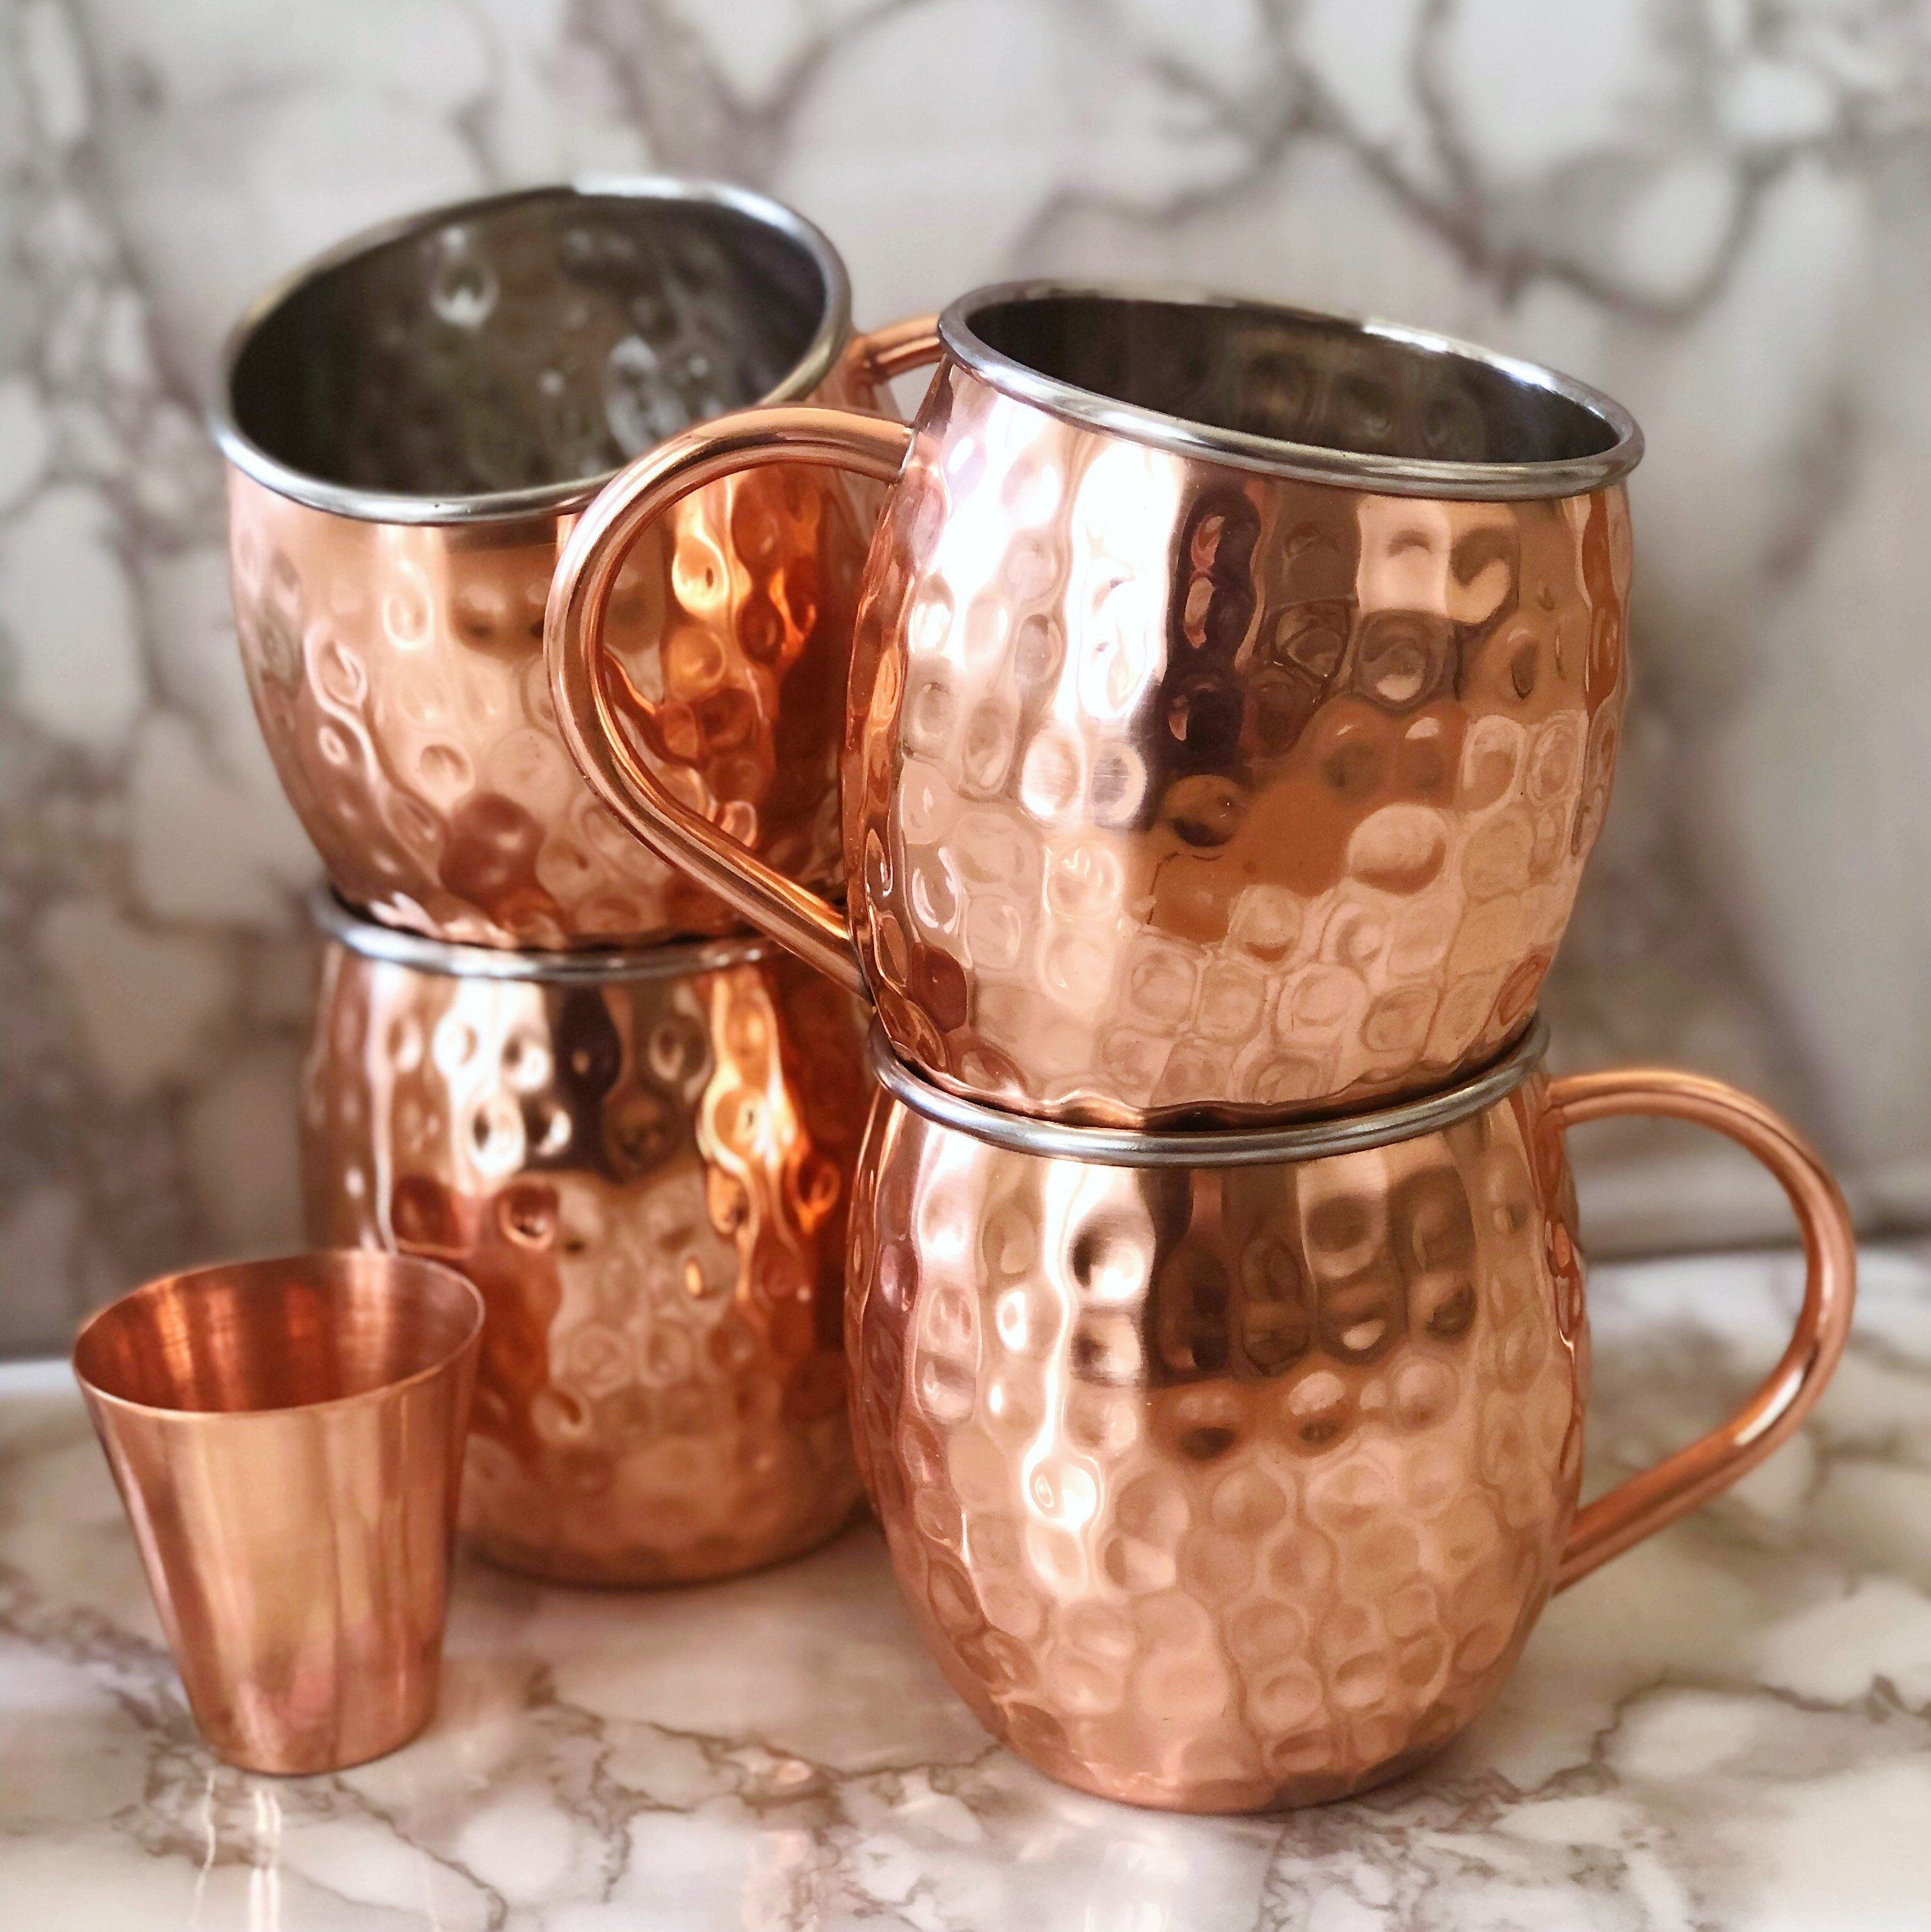 Urban Vintage LA Set of 4 Lined Moscow Mule Copper Mugs with Marble Background